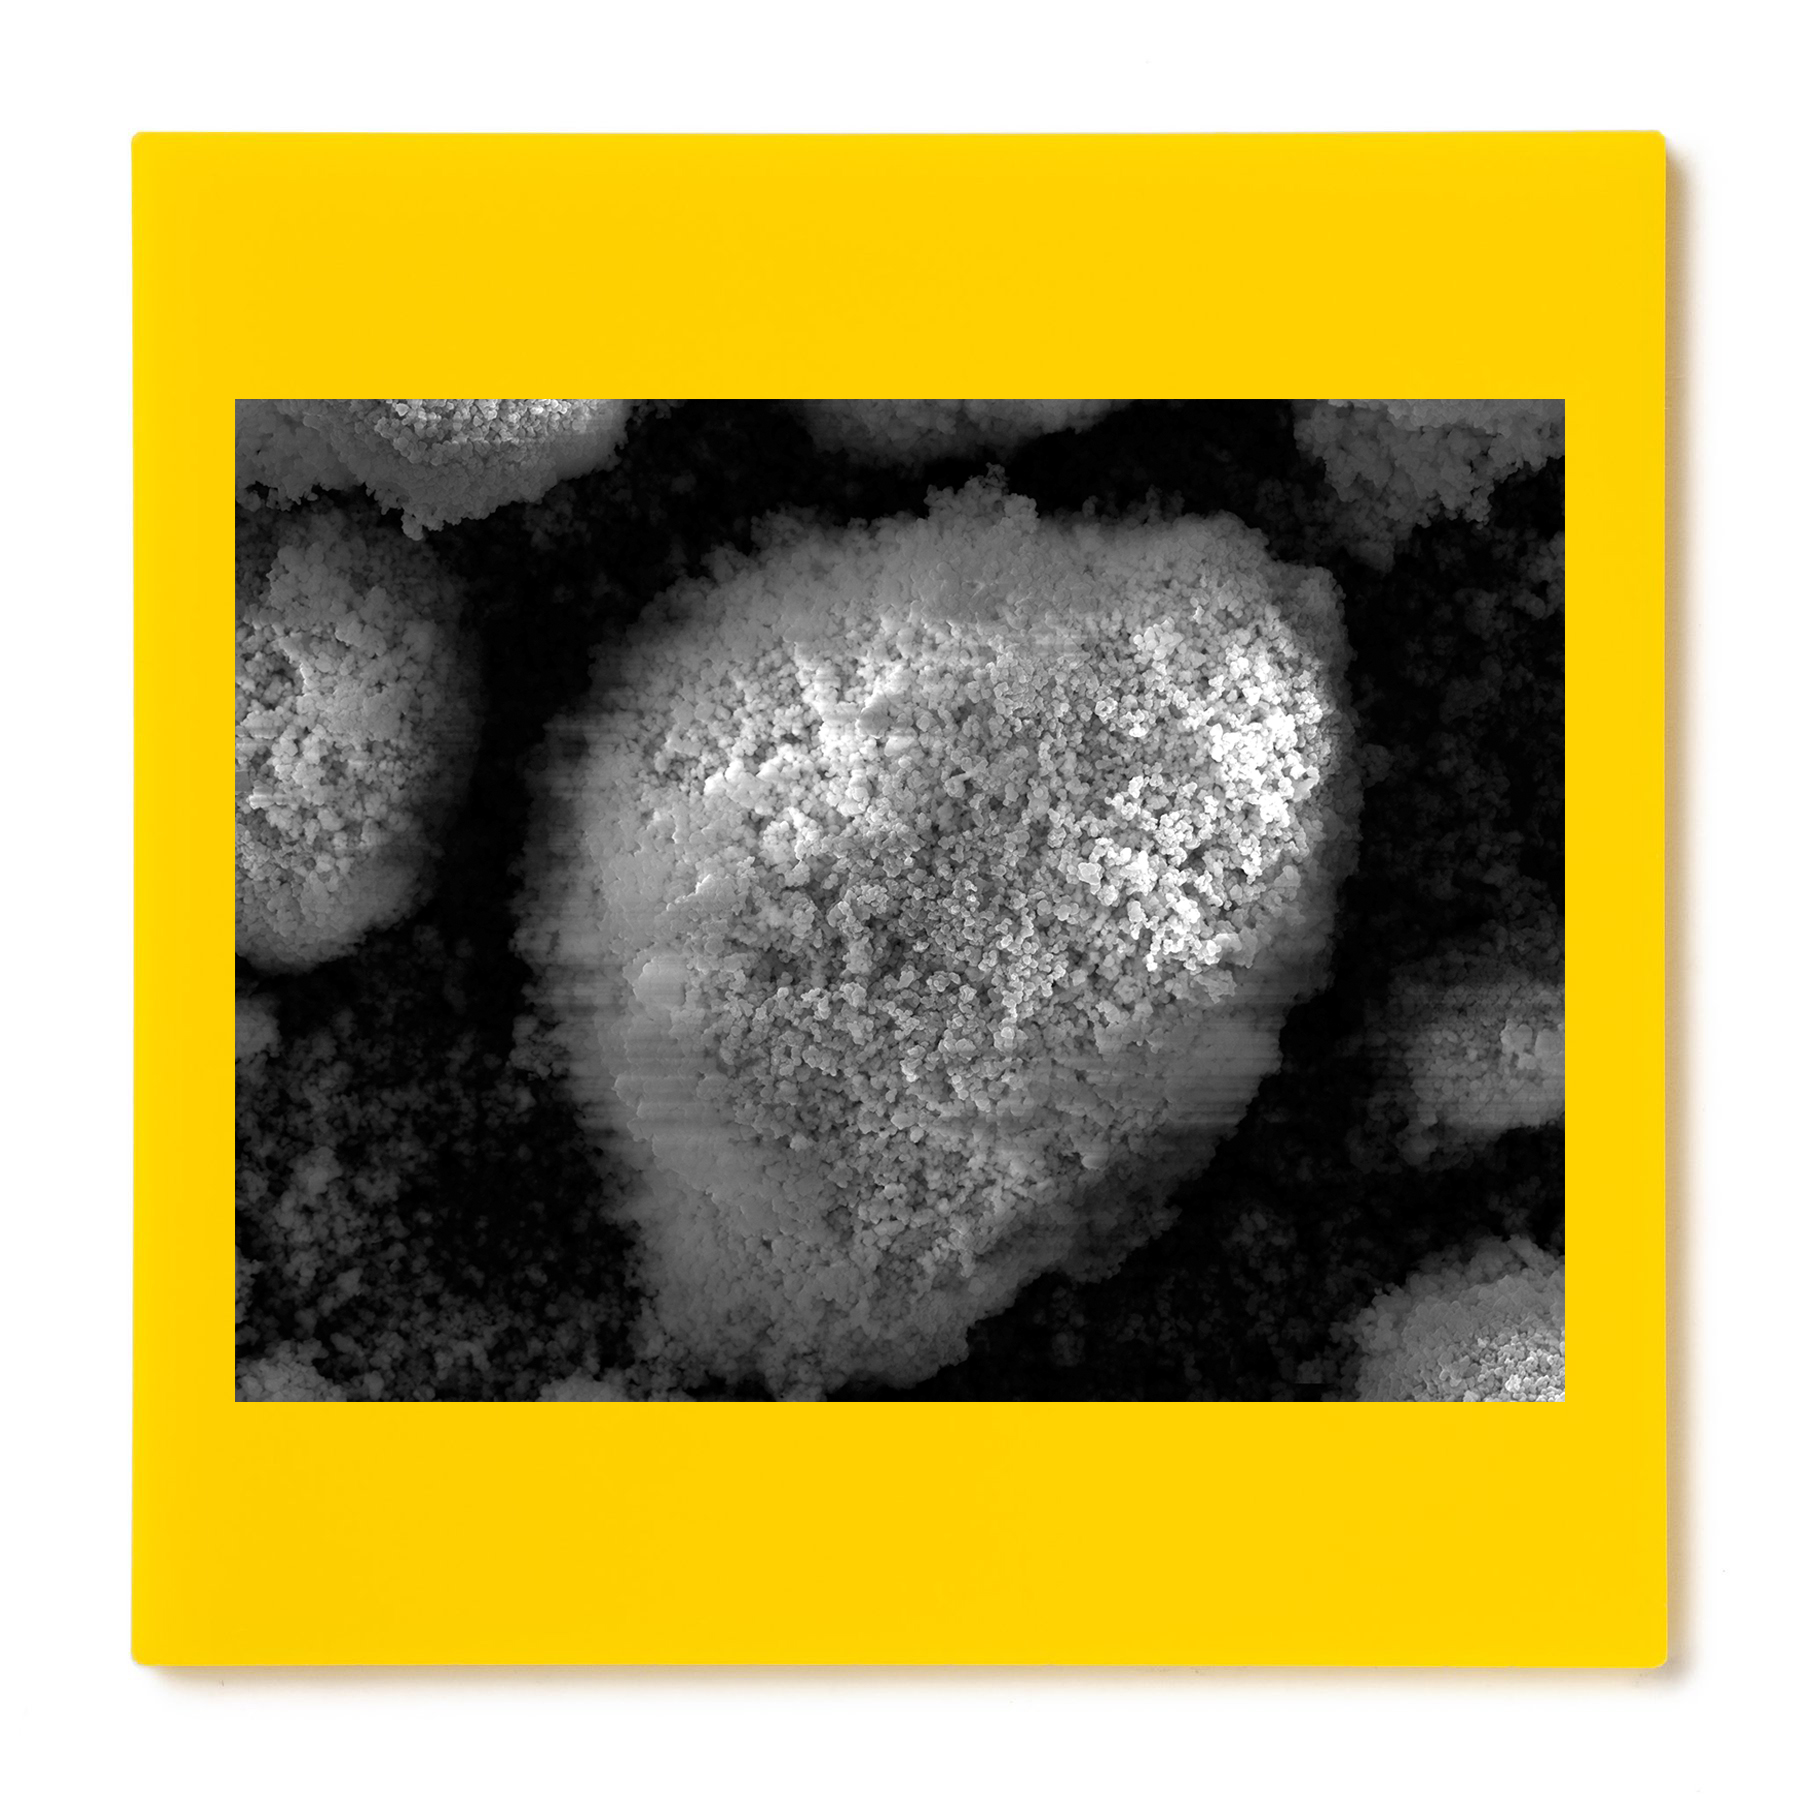 Yellow pigment #1. Gelatin silver print mounted on acrylic. 2014